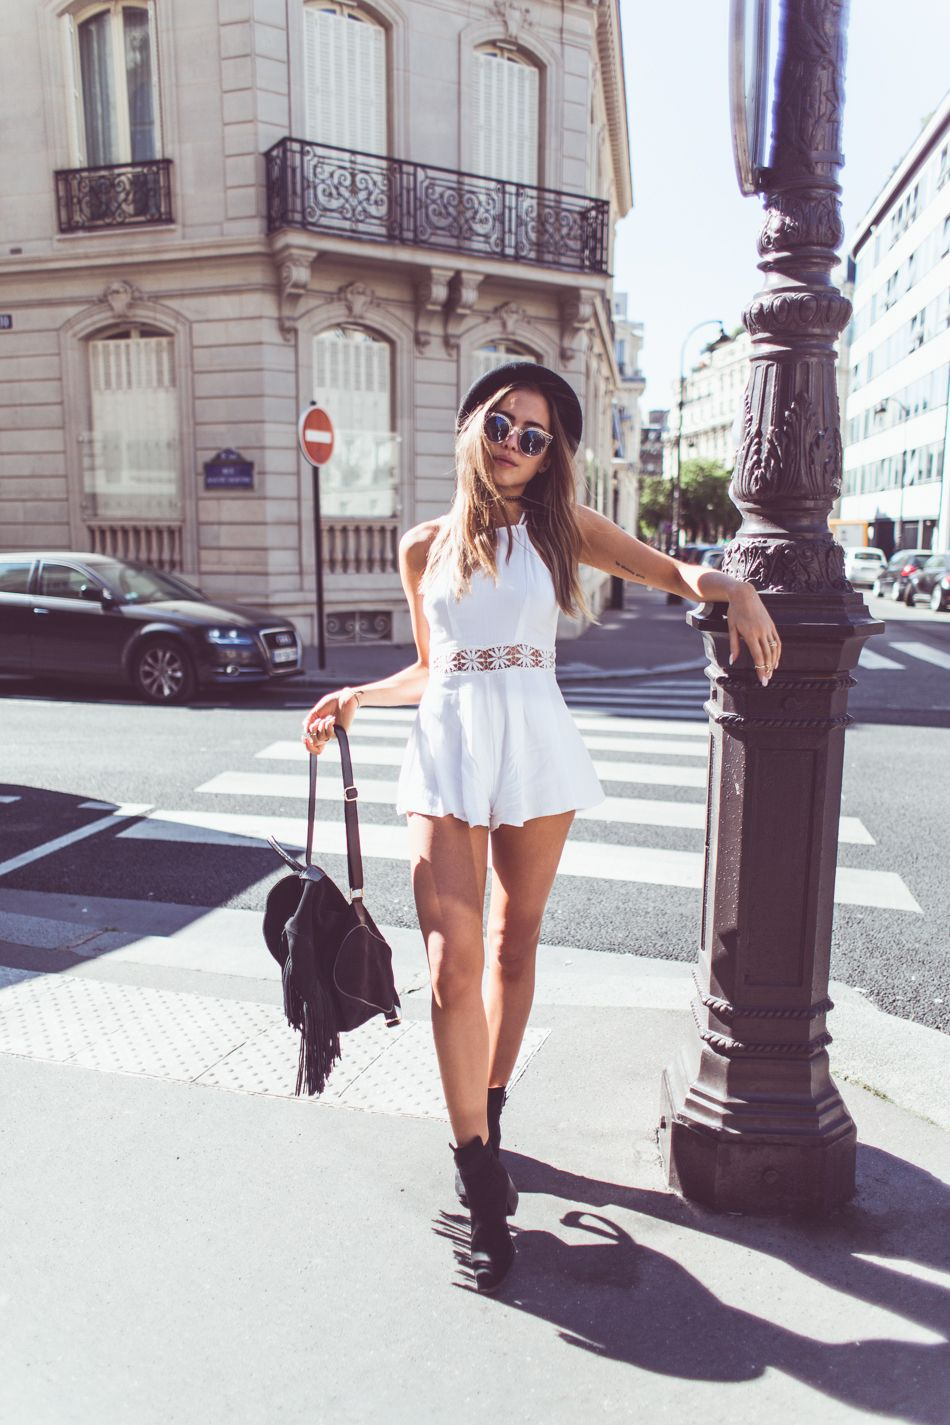 Bohemian style essentials kenza zouiten is wearing a chicy